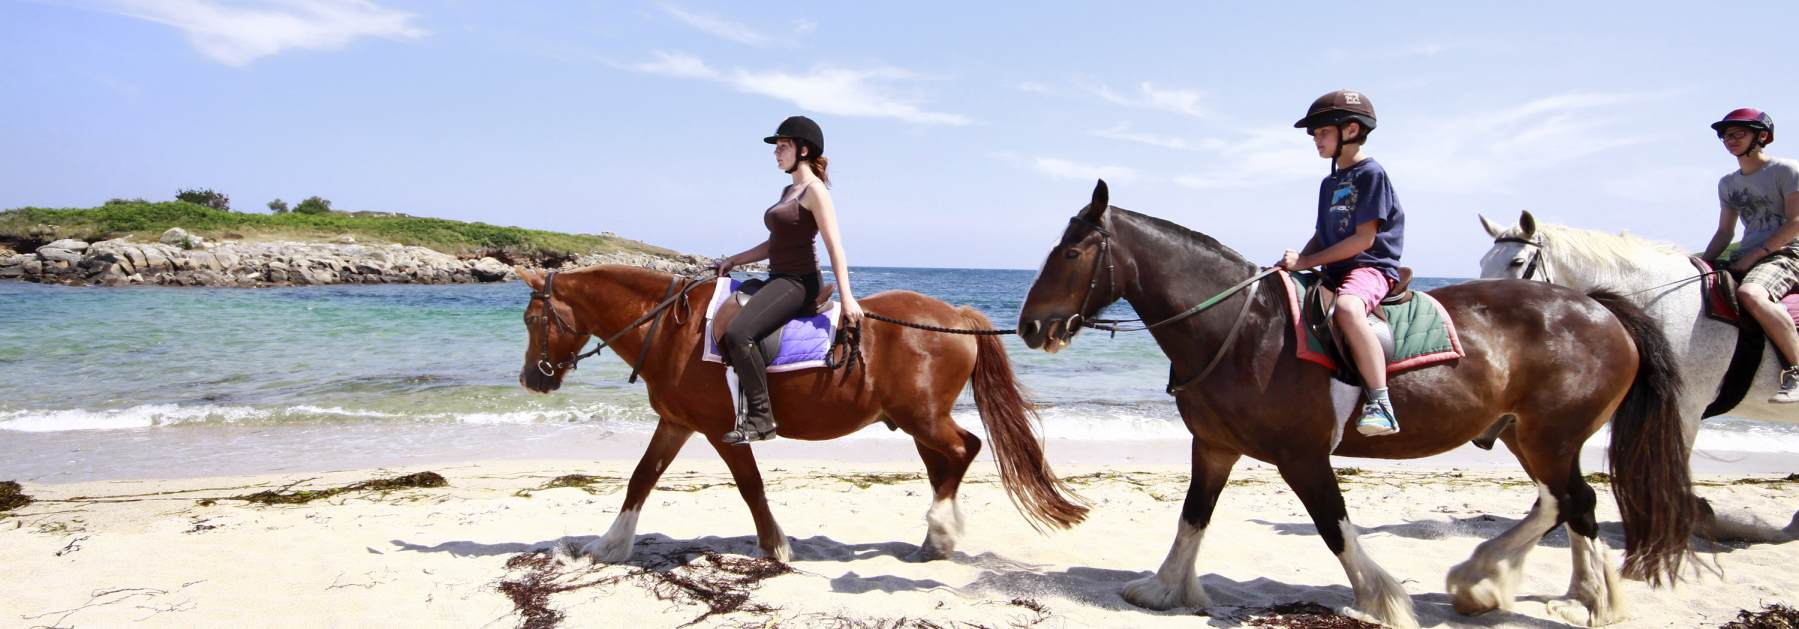 scilly-st-marys-horse-riders-beach